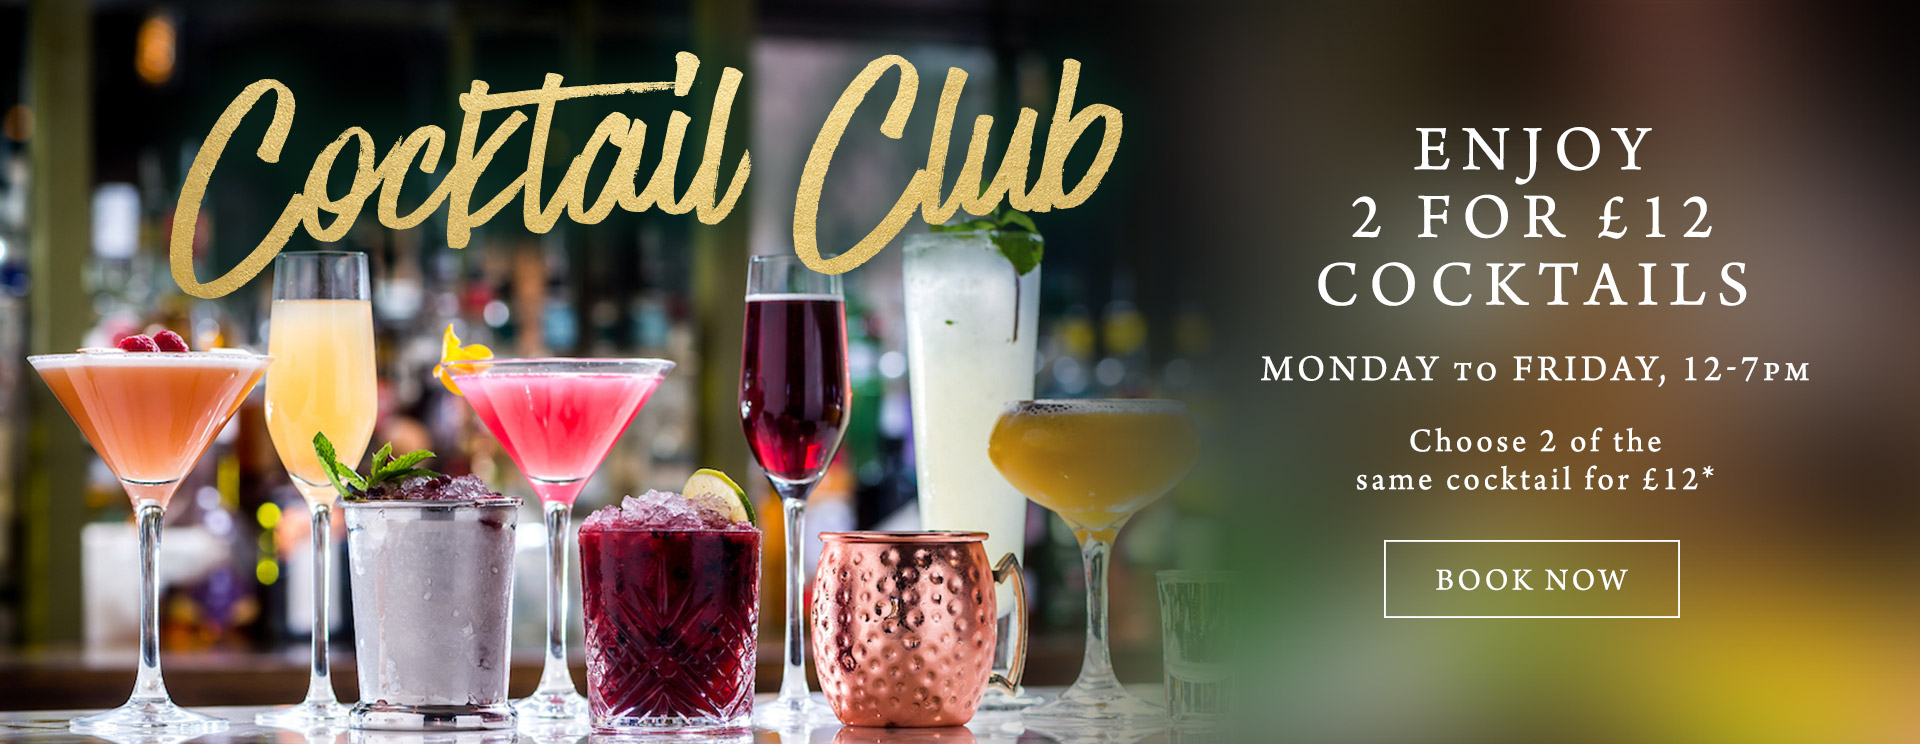 2 for £12 cocktails at The Cliff